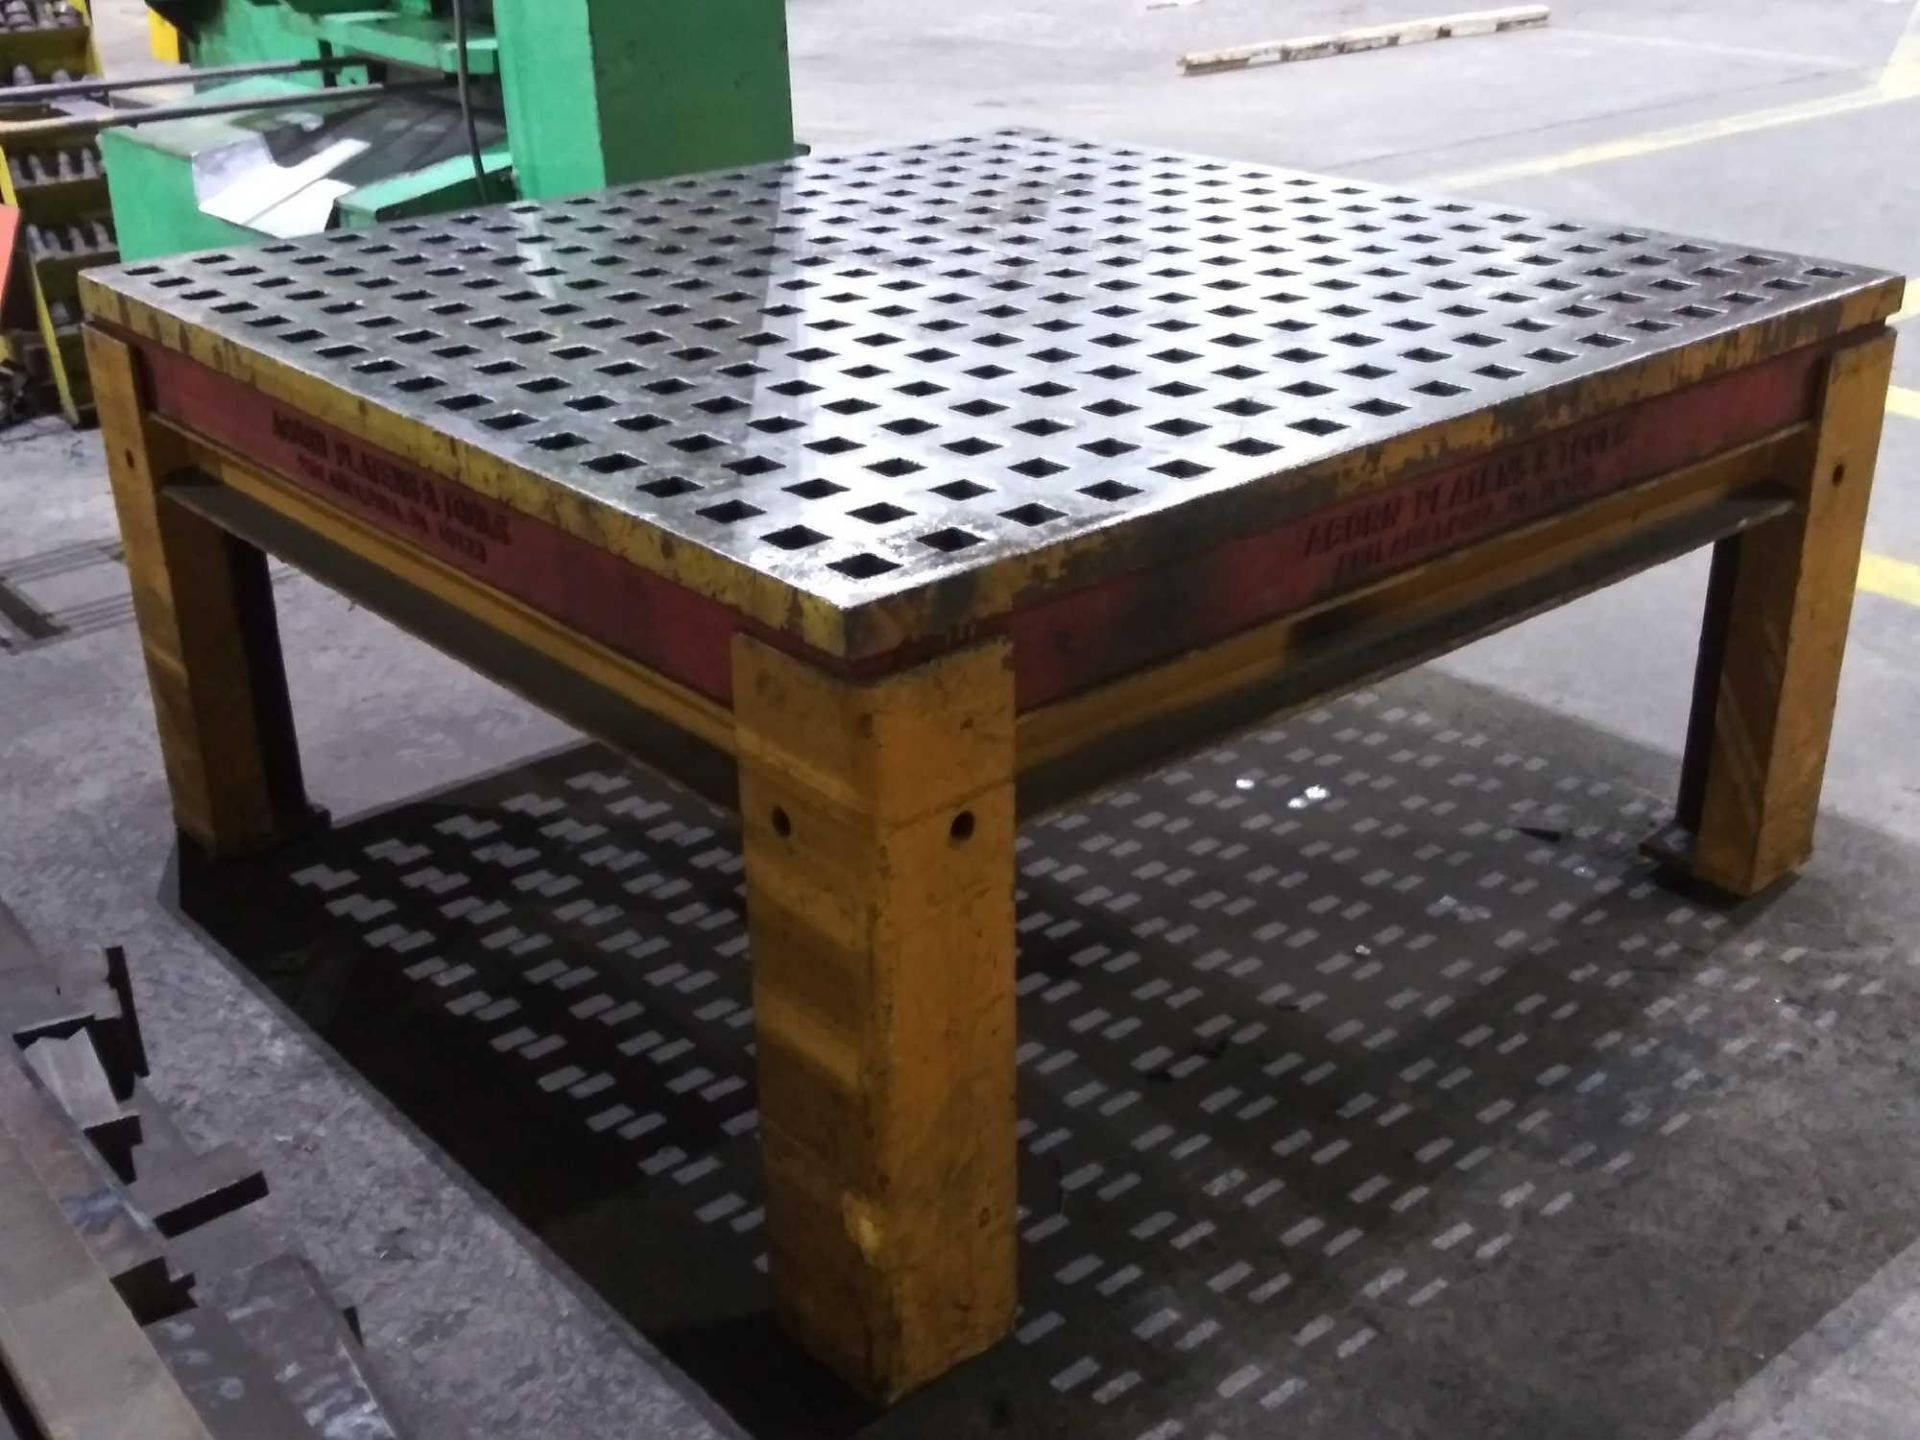 """Acorn Platens & Tools Welding Table, 60""""x60""""x30"""", square hole dimensions 1-3/4"""", inv1080 - Image 6 of 15"""